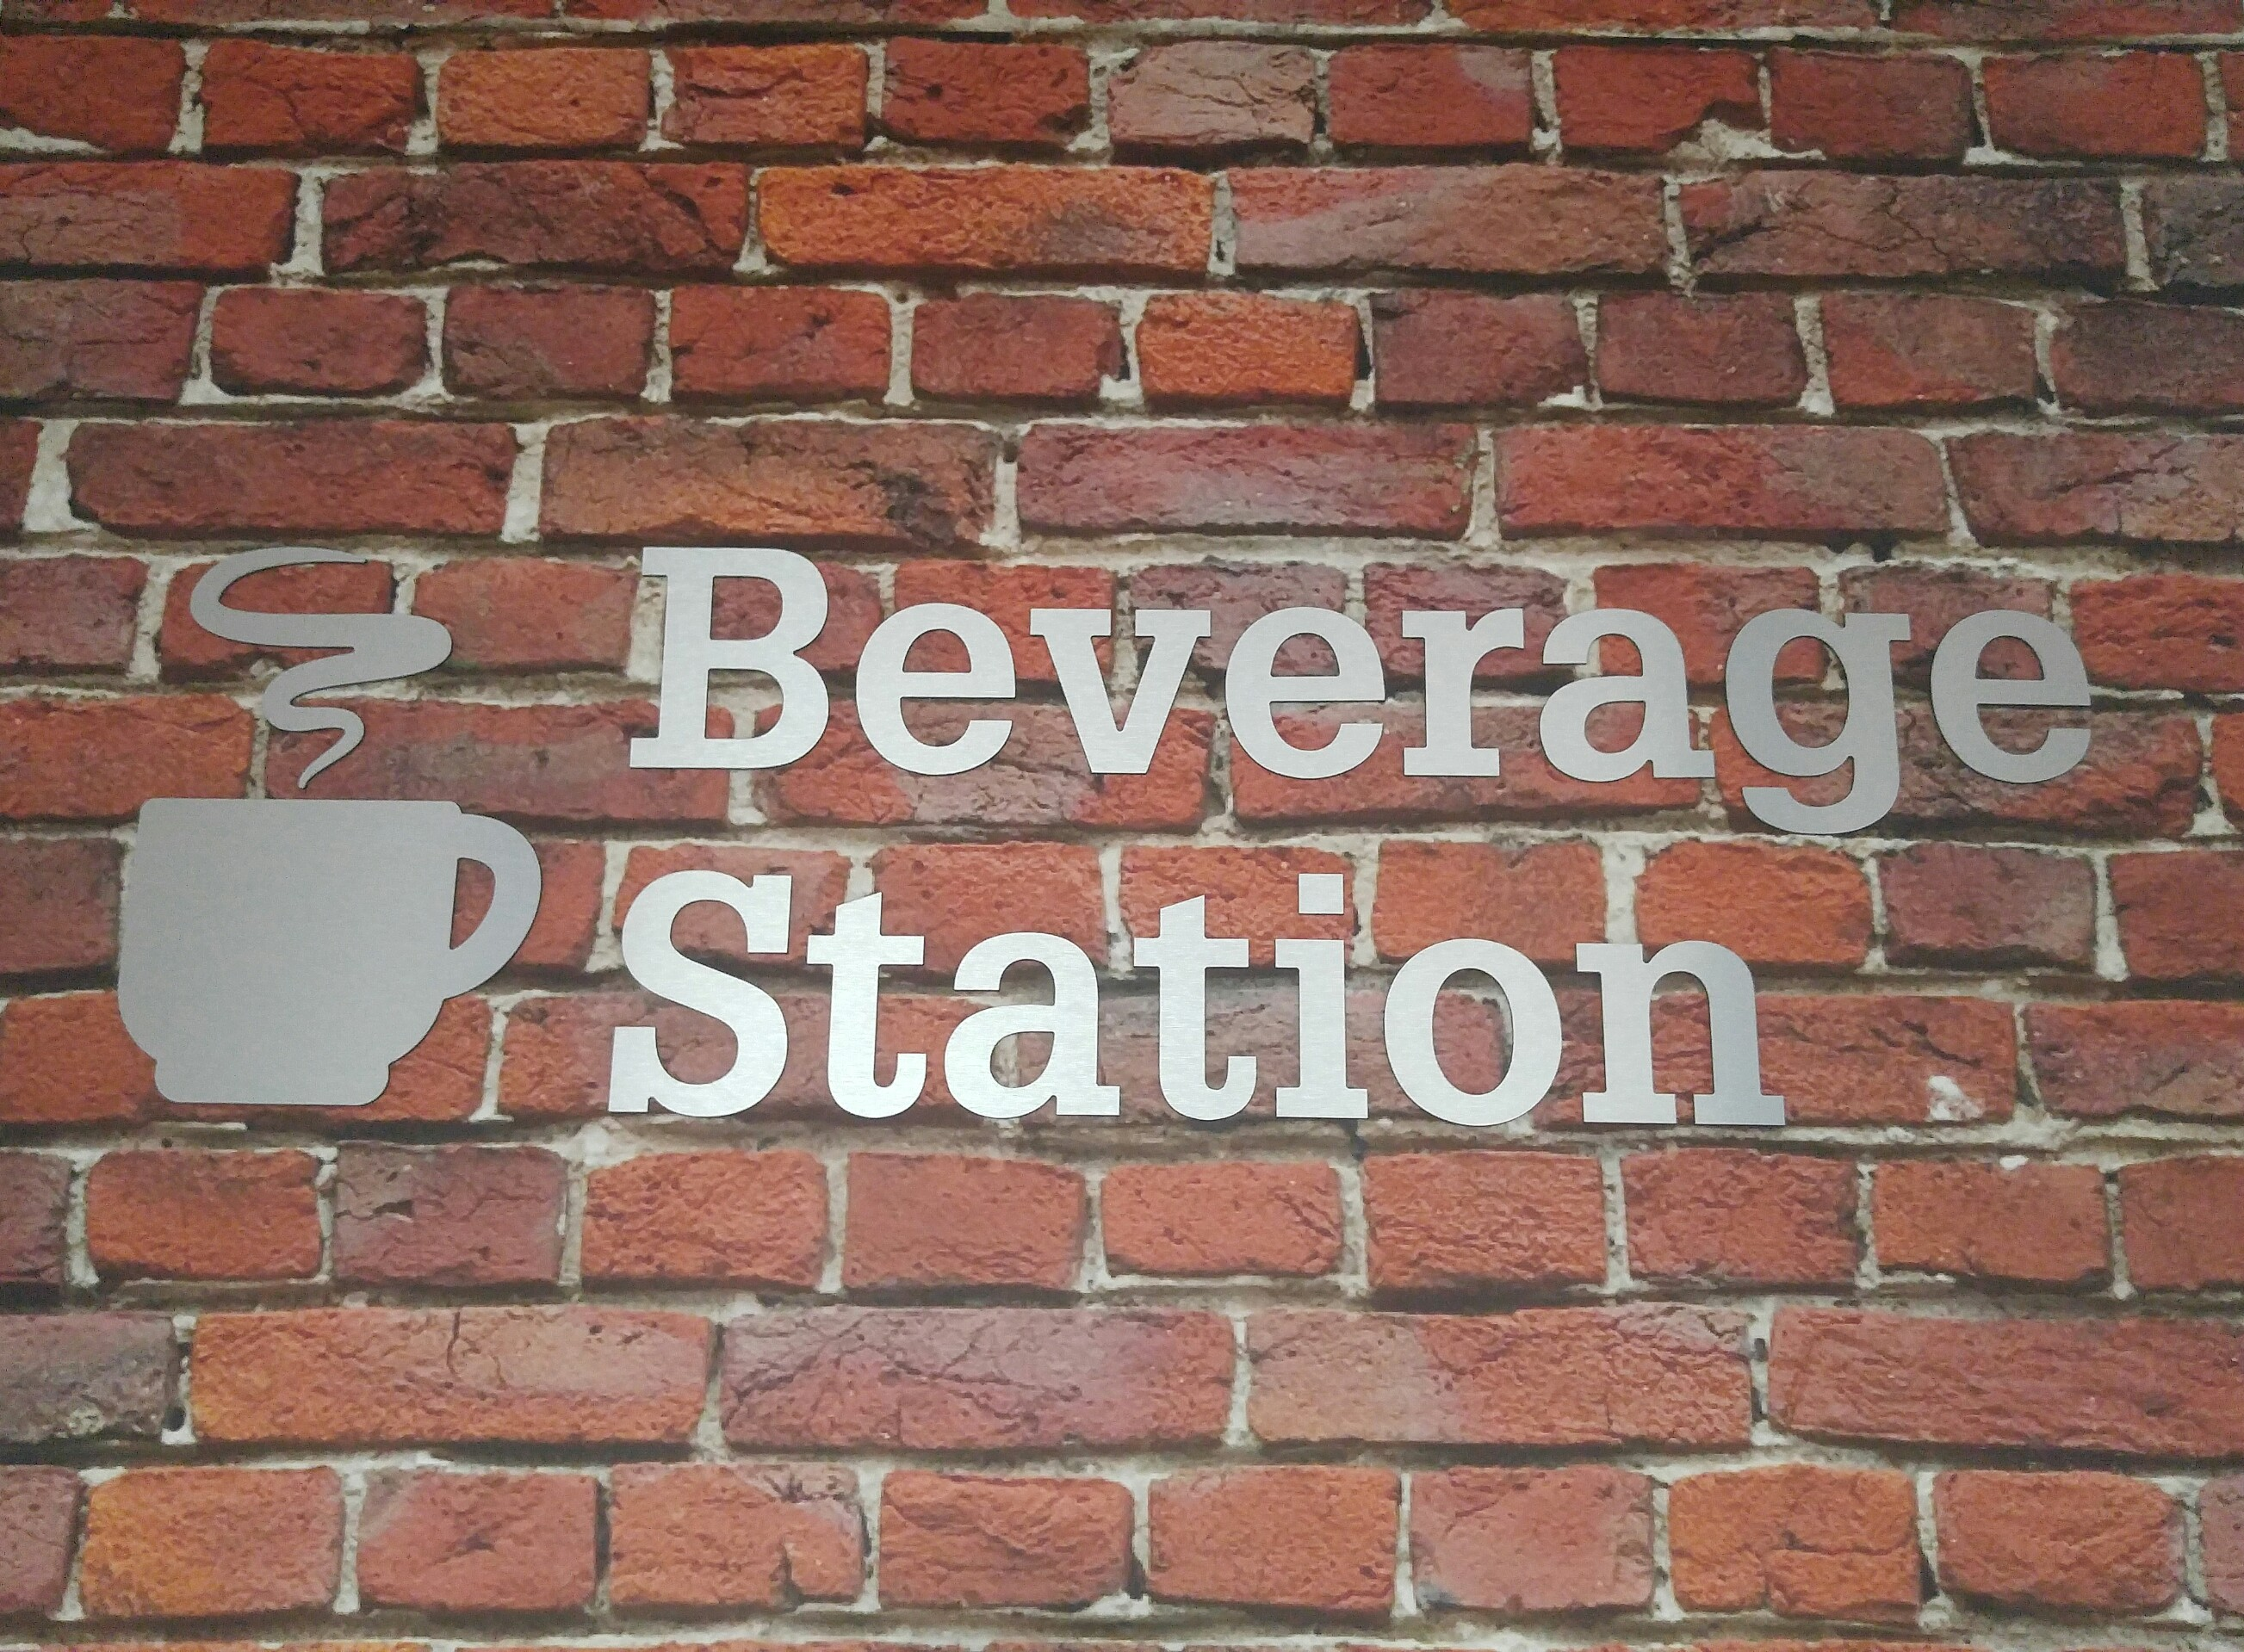 Brushed silver metal 3D letters with text that reads: Beverage Station